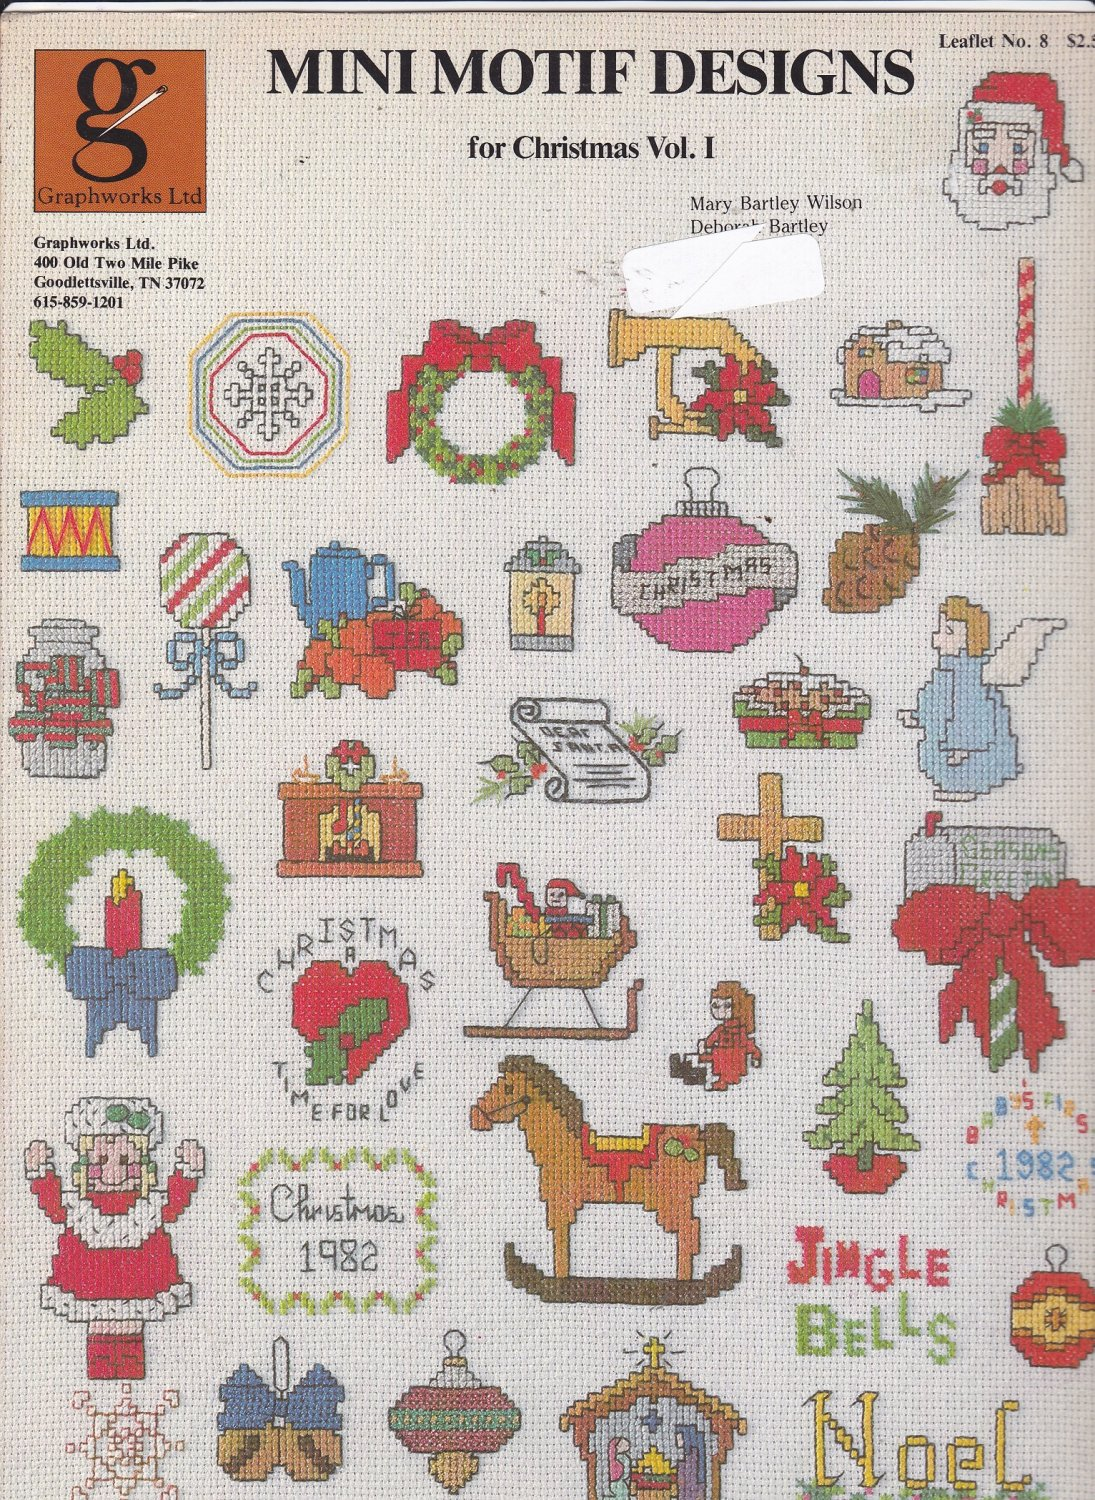 Graphworks Mini Motif Designs Christmas vol 1 leaflet 8 Counted Cross Stitch